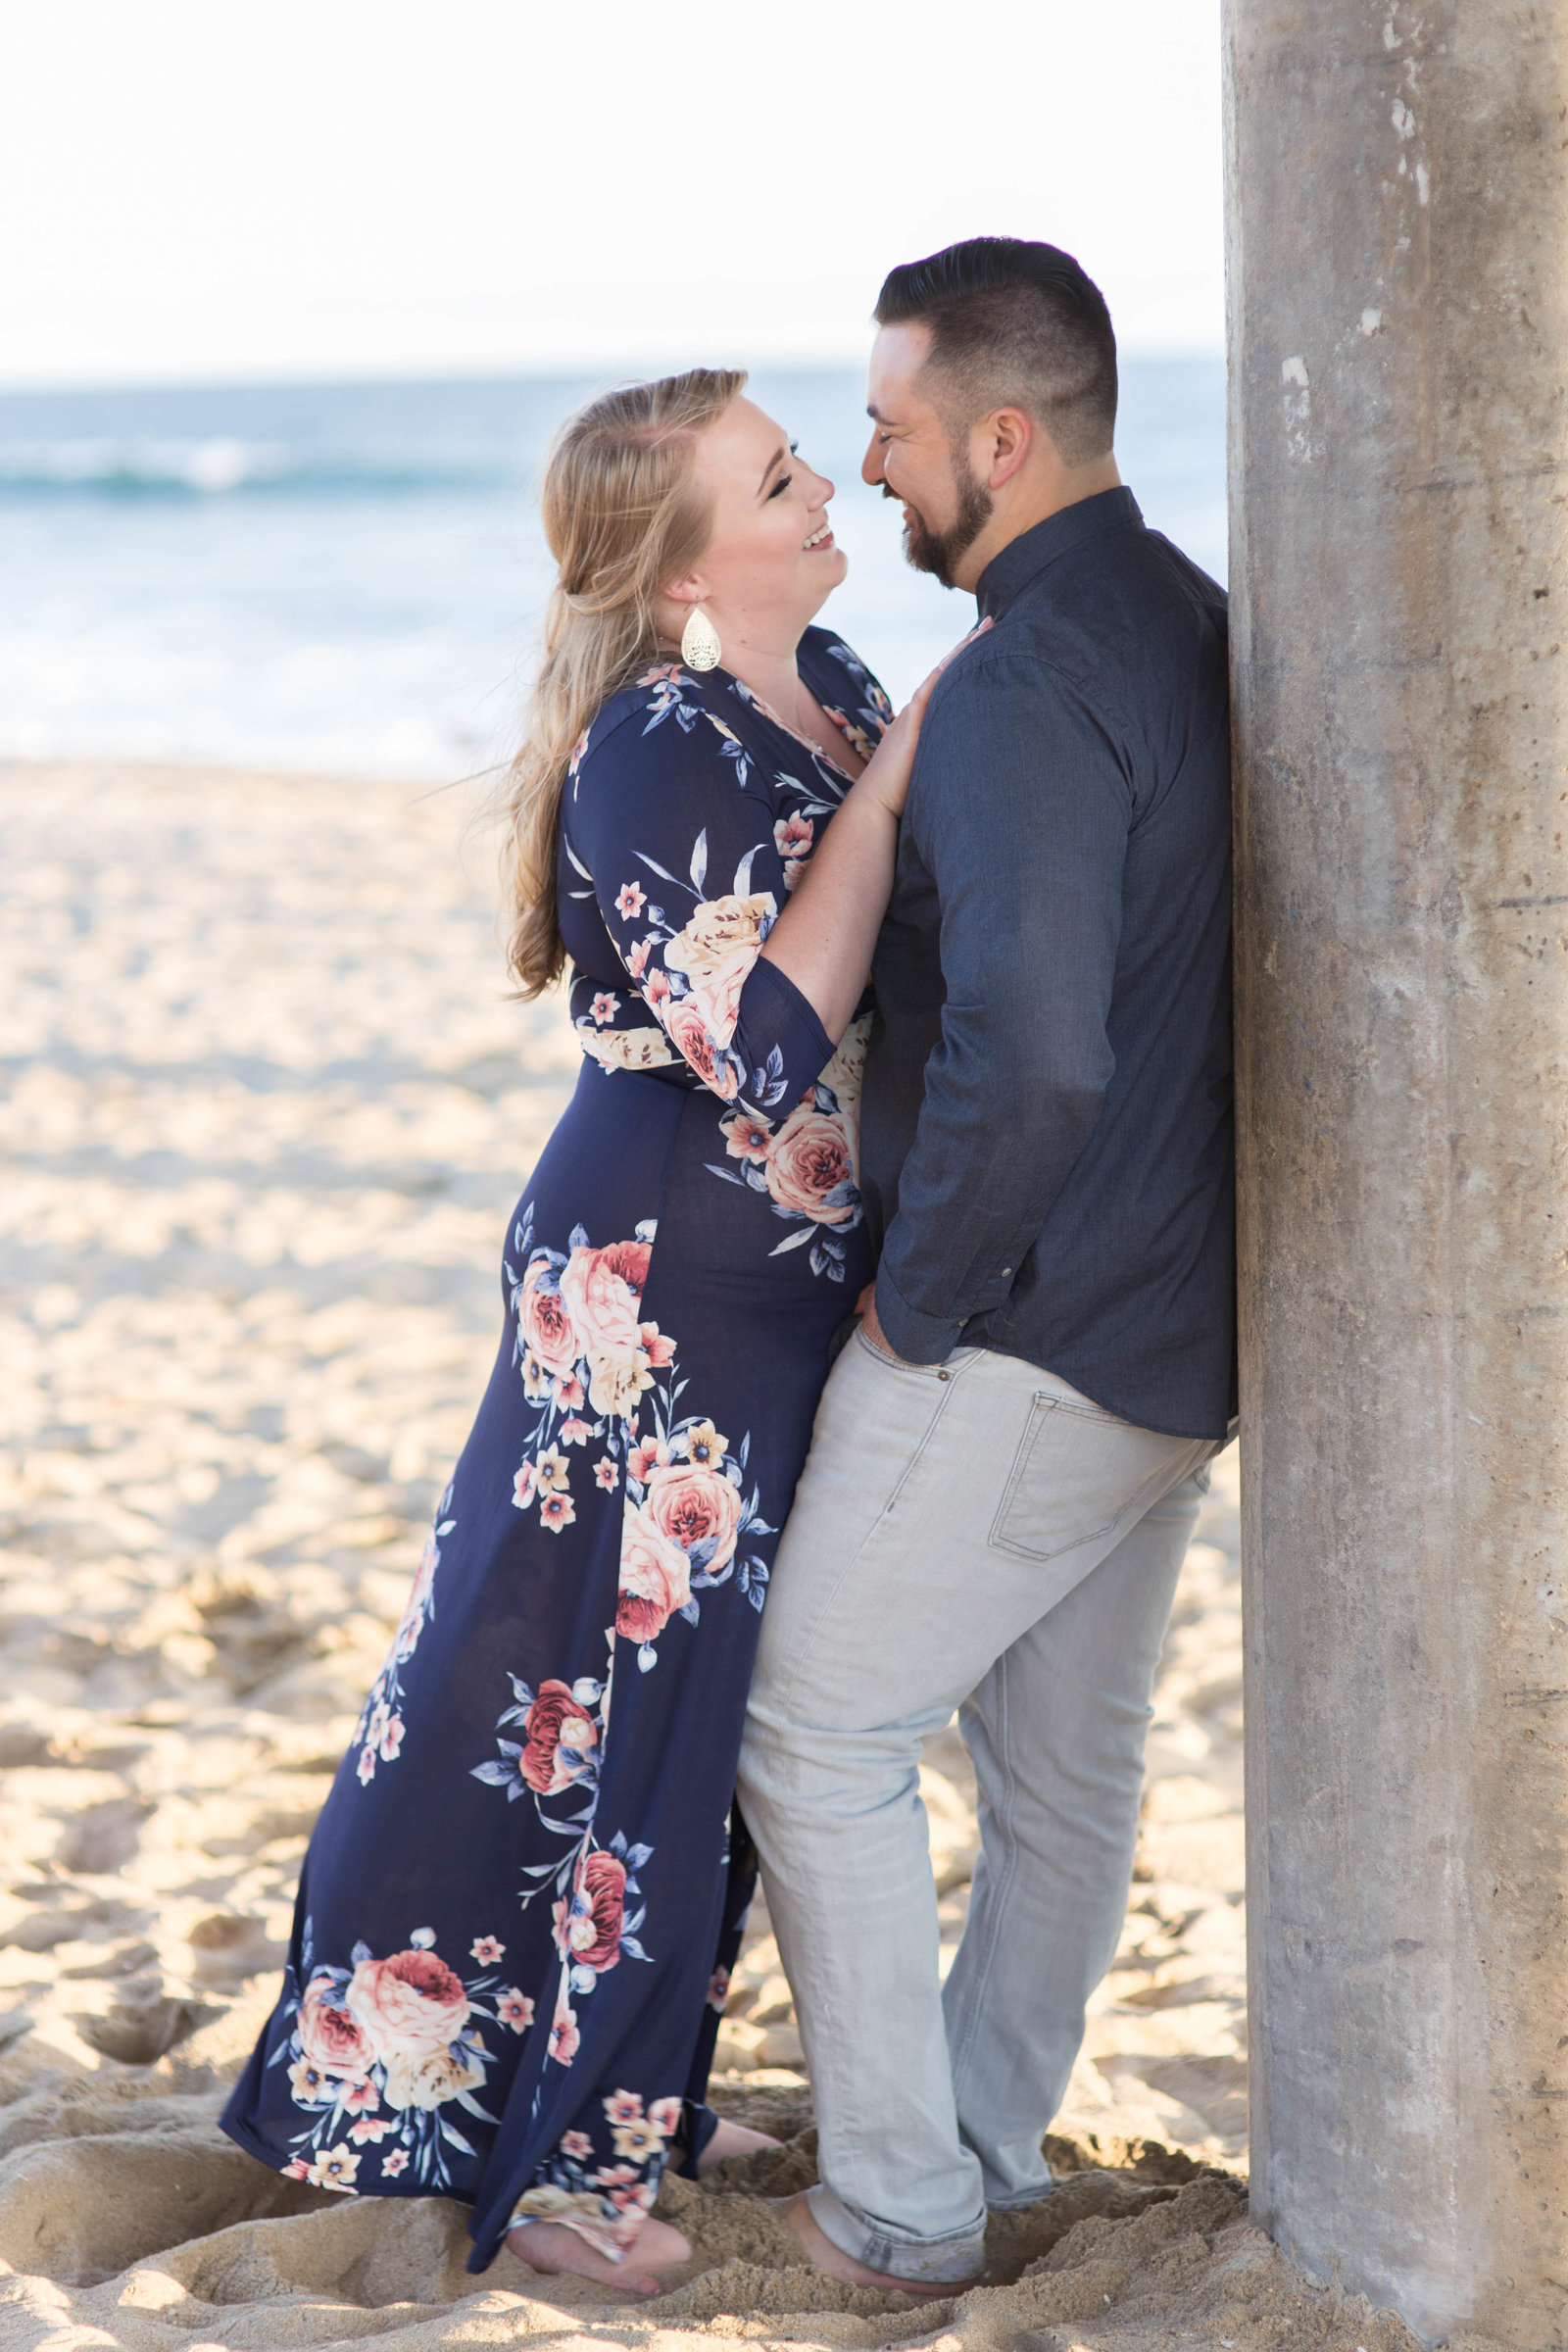 Engagement Session at Huntington Beach Pier - Kelly H Photo